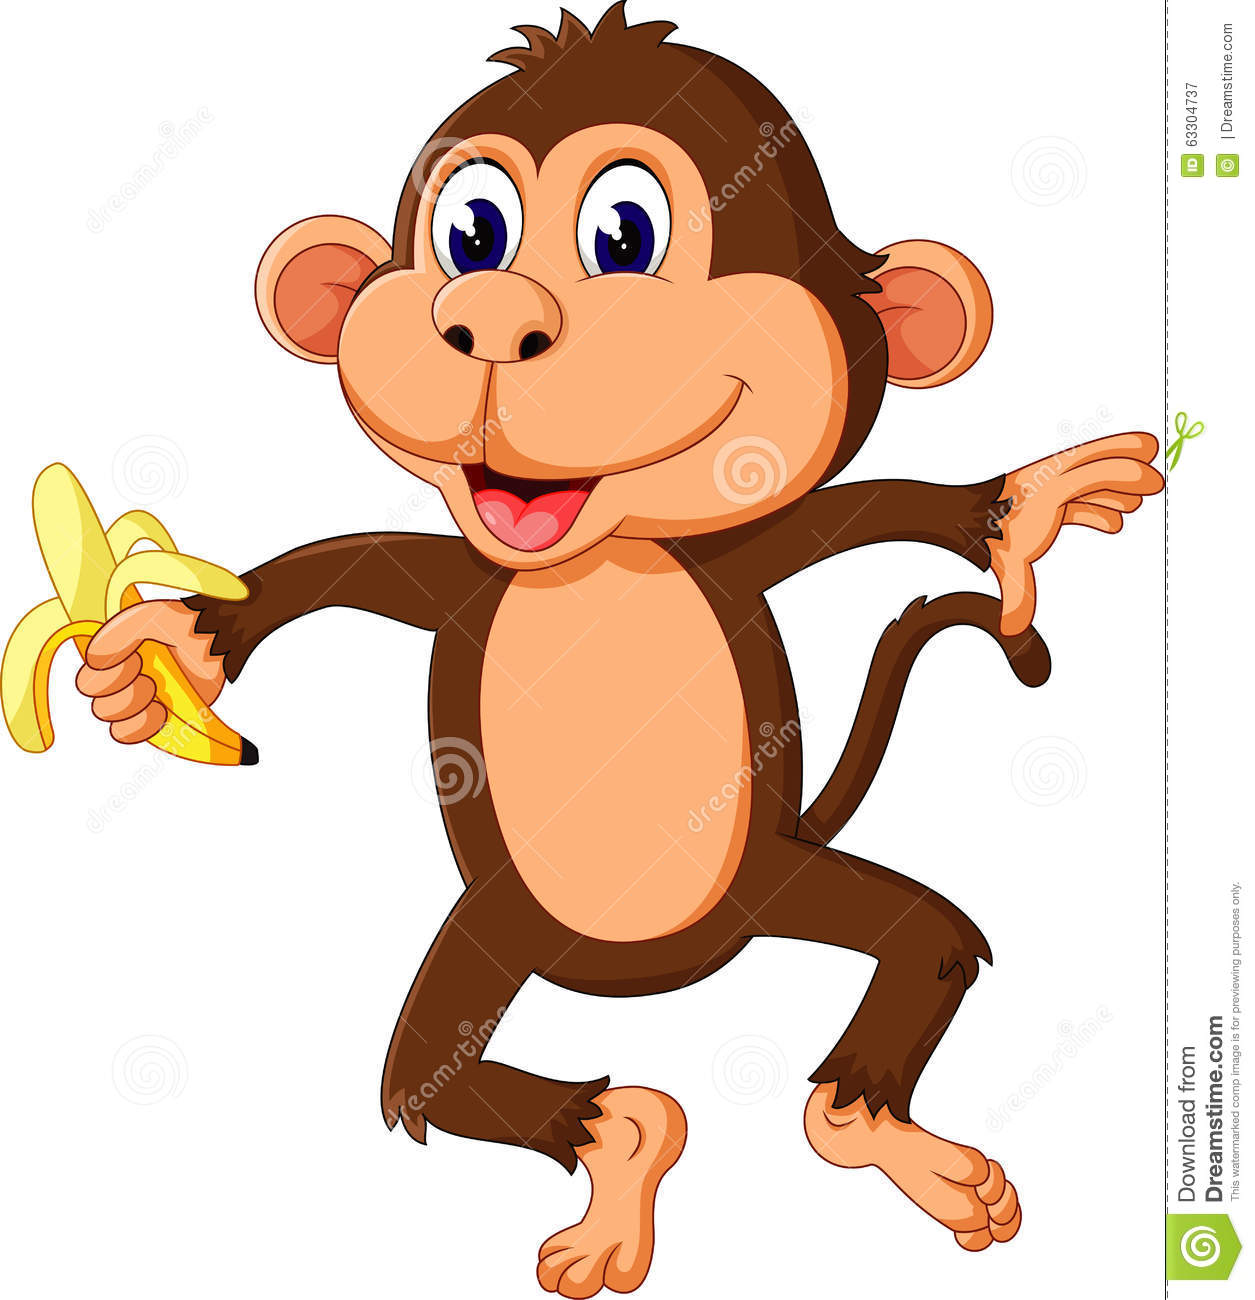 Cute Cartoon Monkey Stock Vector - Image: 63304737